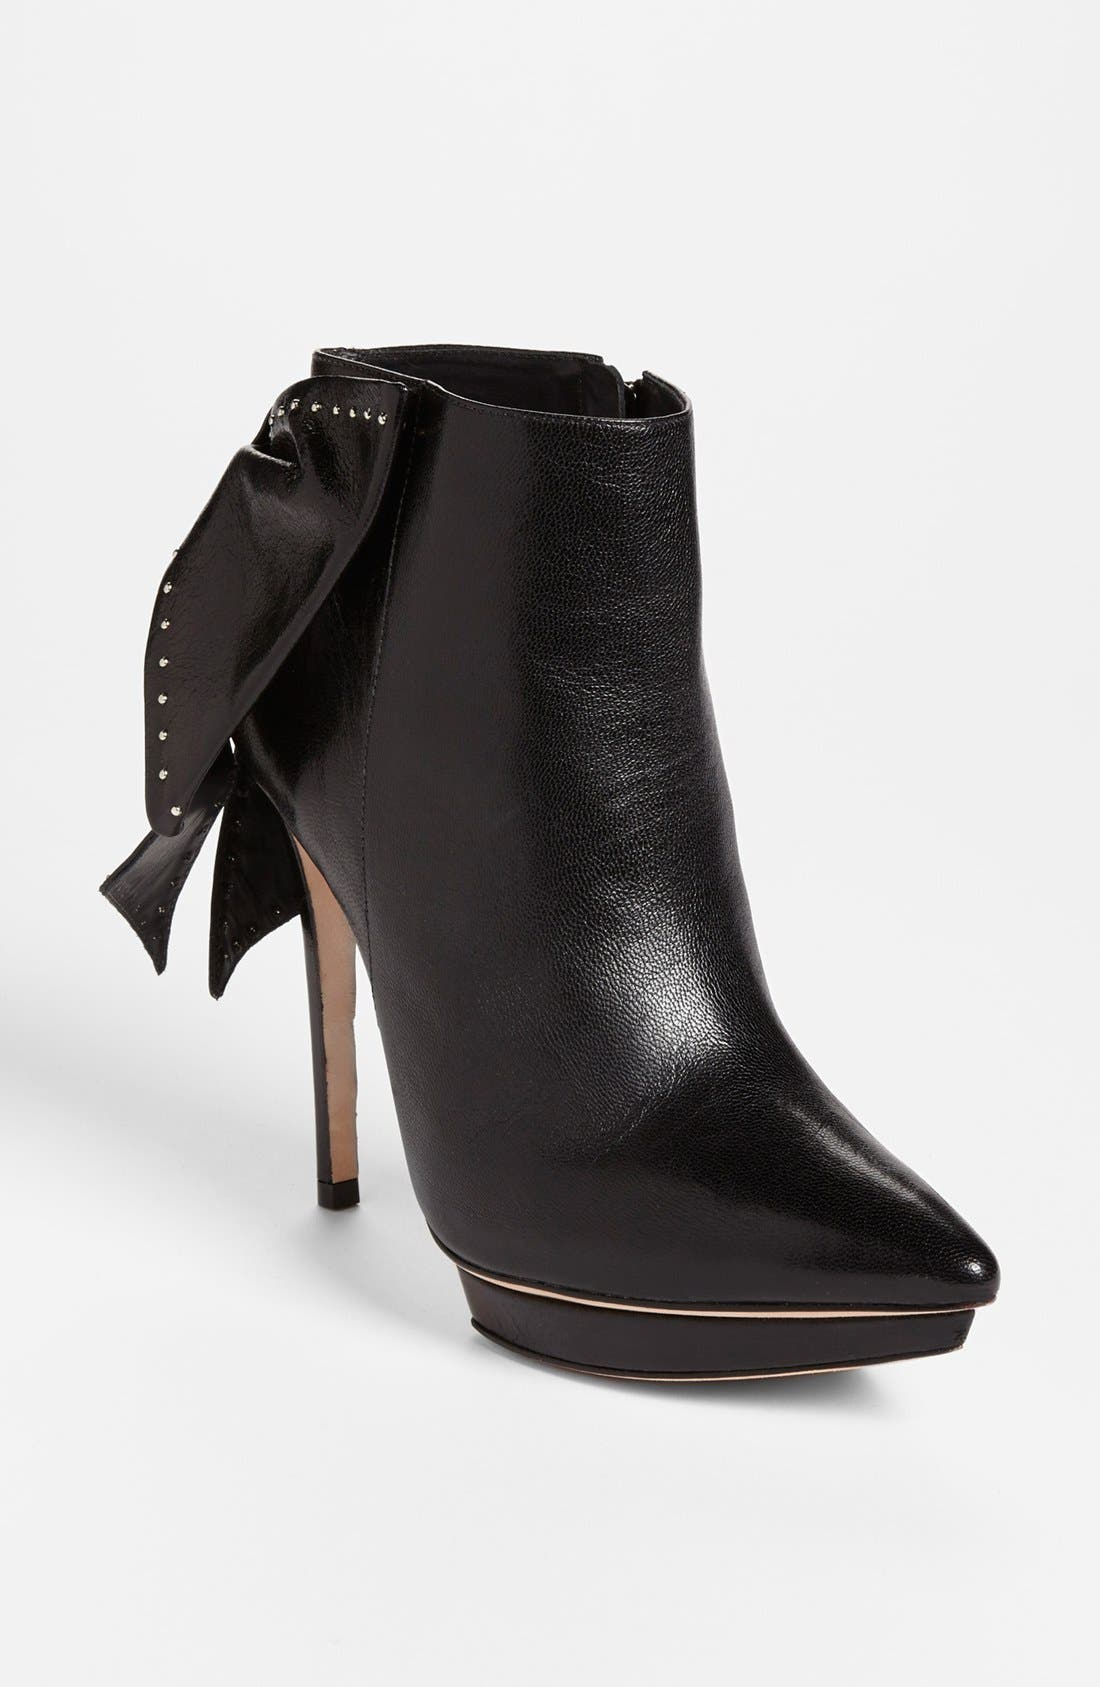 Alternate Image 1 Selected - Alice + Olivia 'Darleen' Leather Bootie